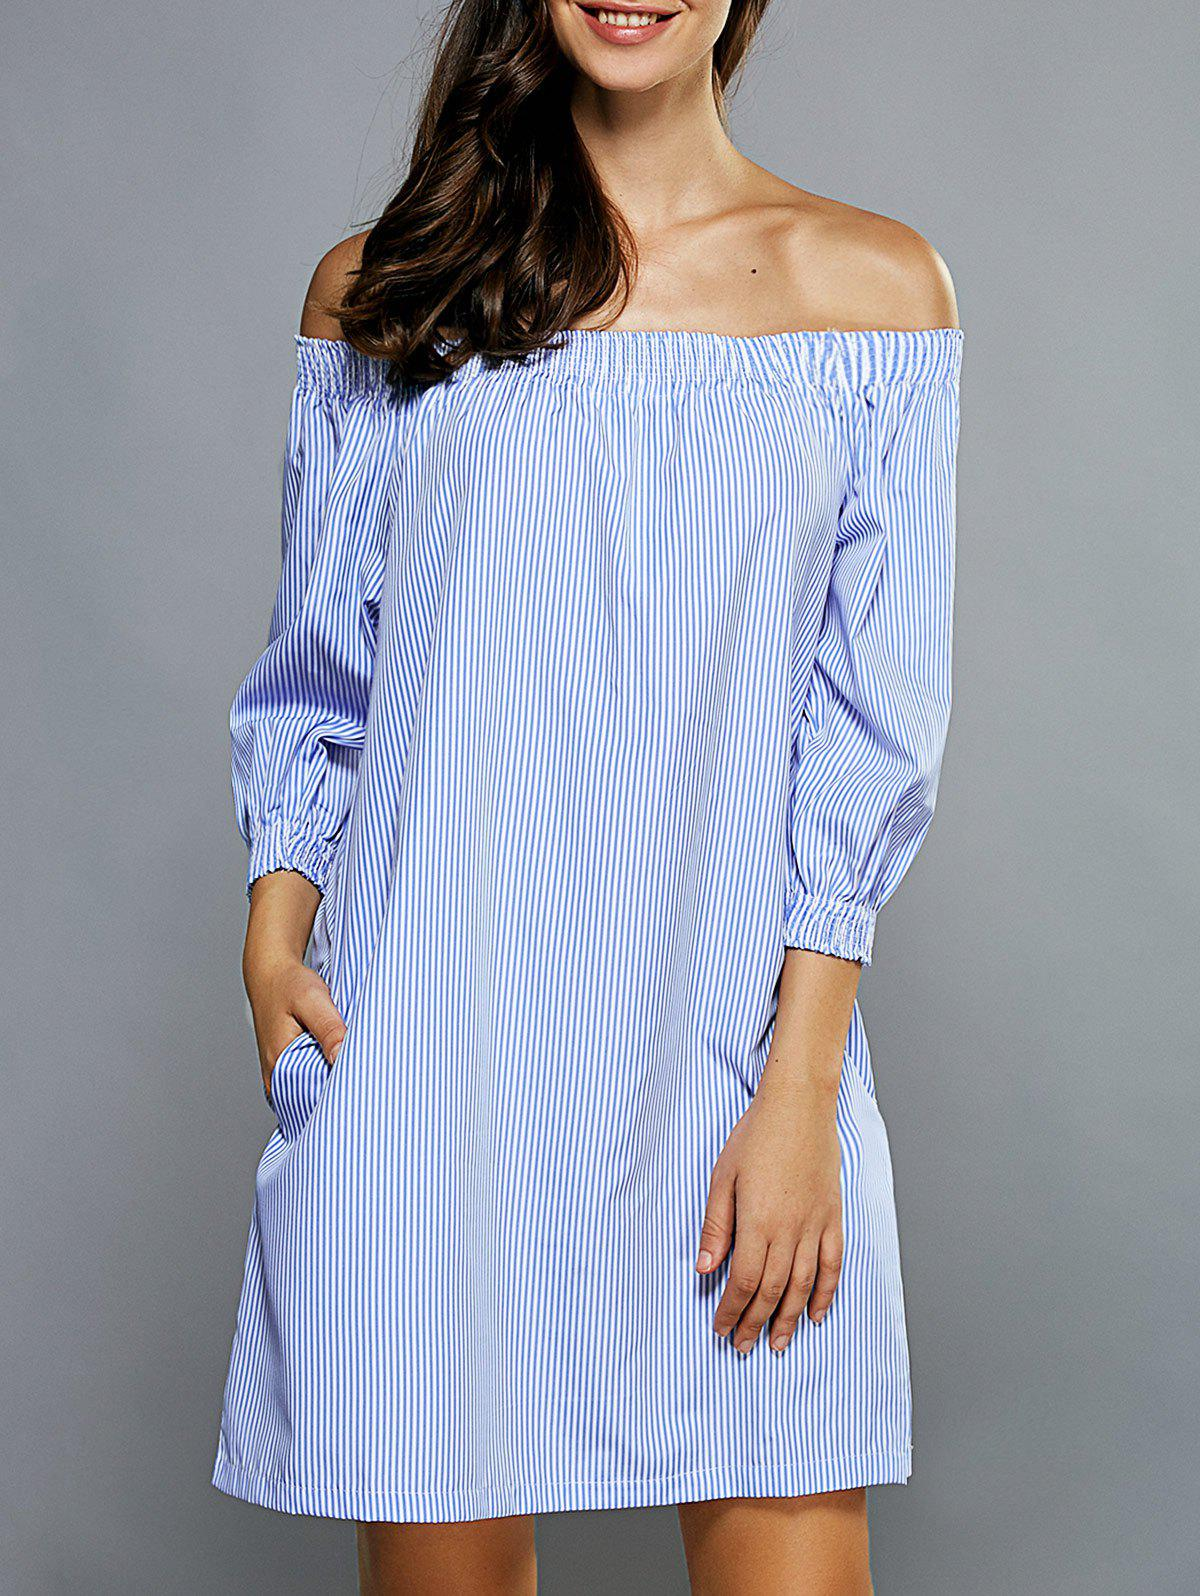 Off-The-Shoulder Striped 3/4 Sleeves Dress - LIGHT BLUE S